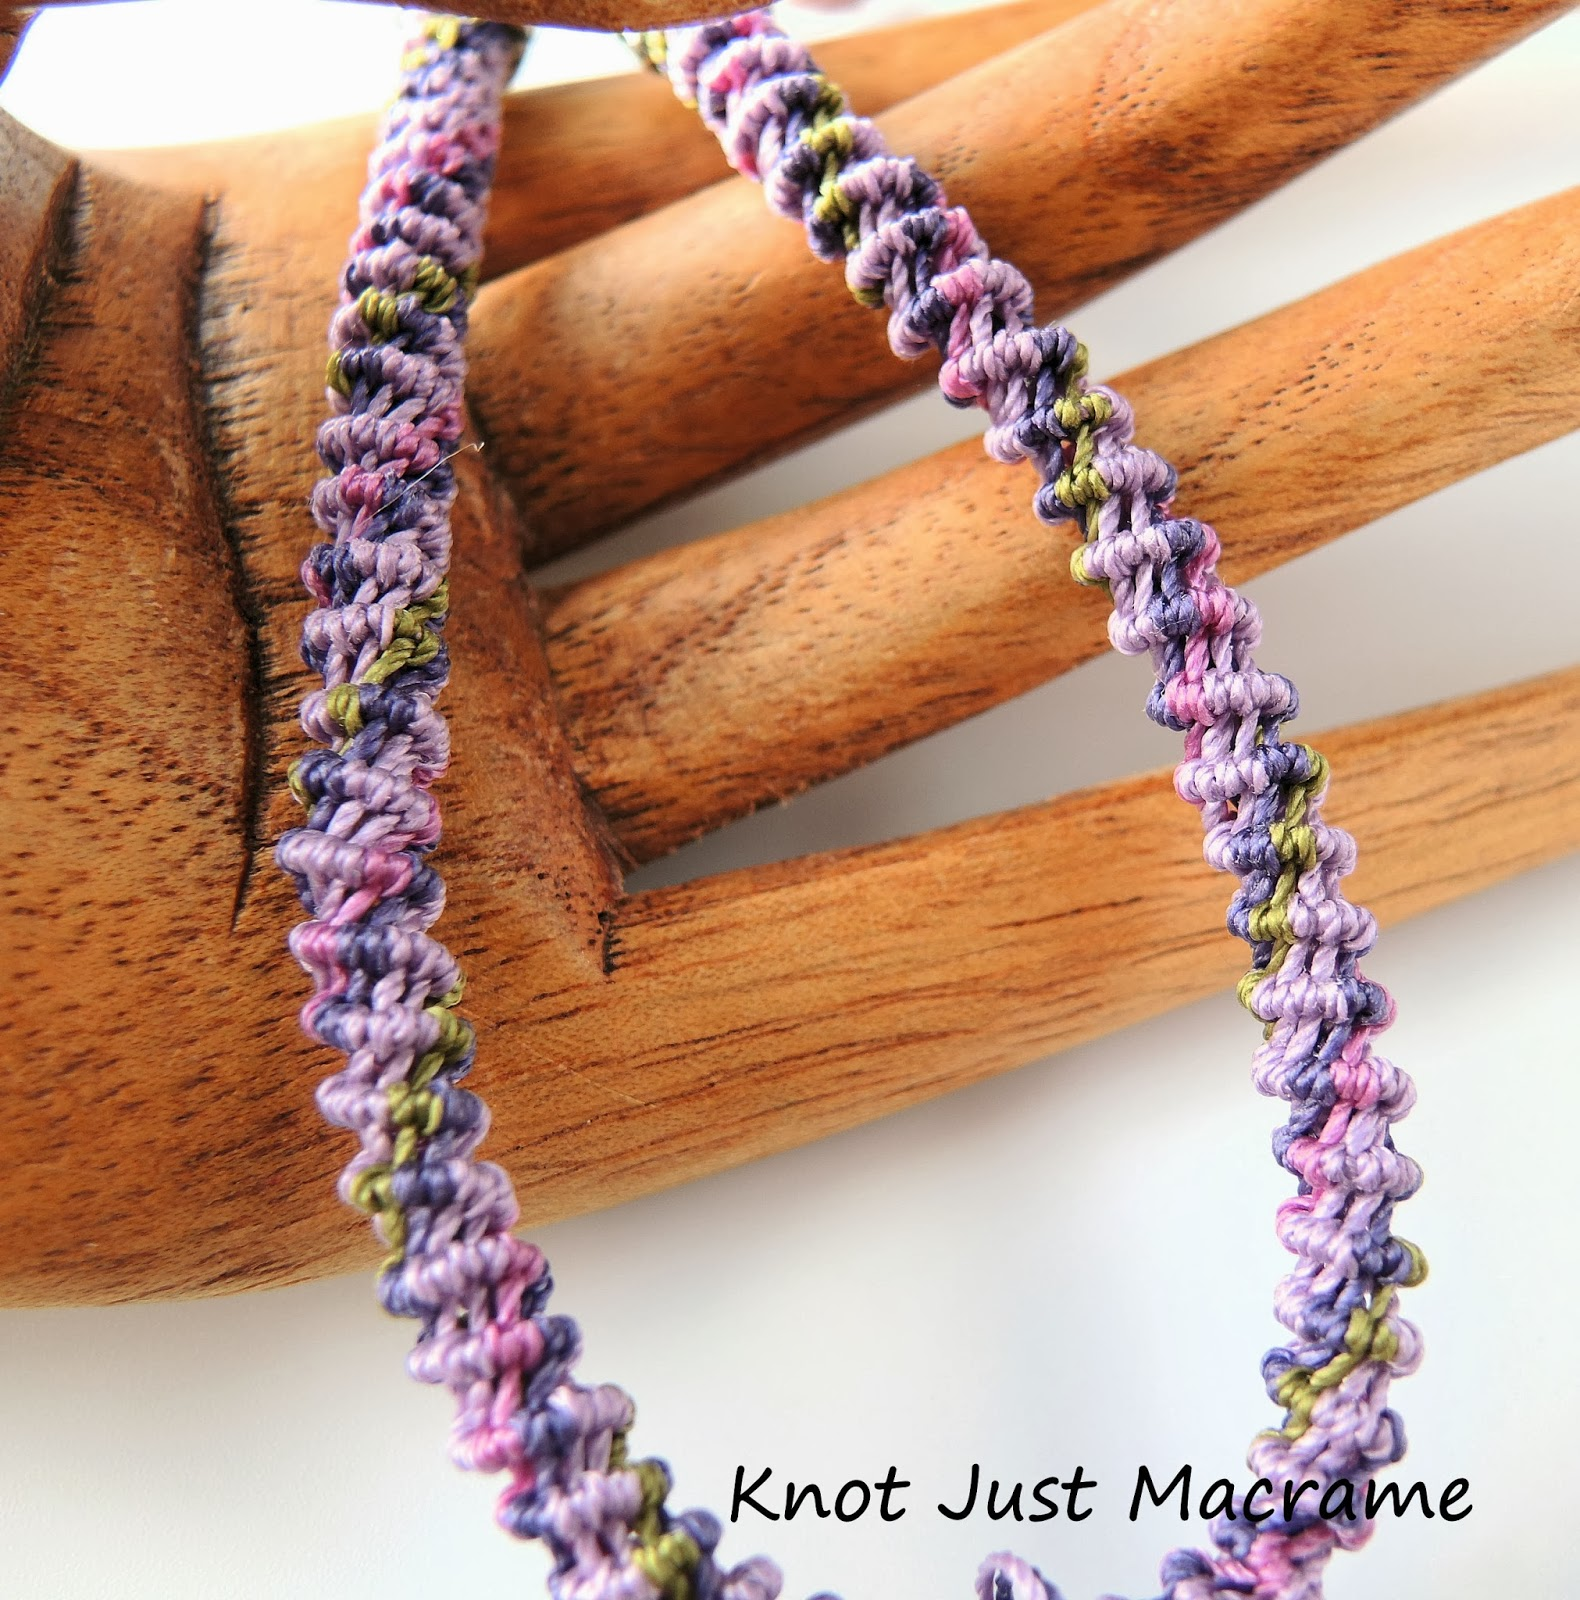 Knotted micro macrame spiral in shades of orchid, purple and olive